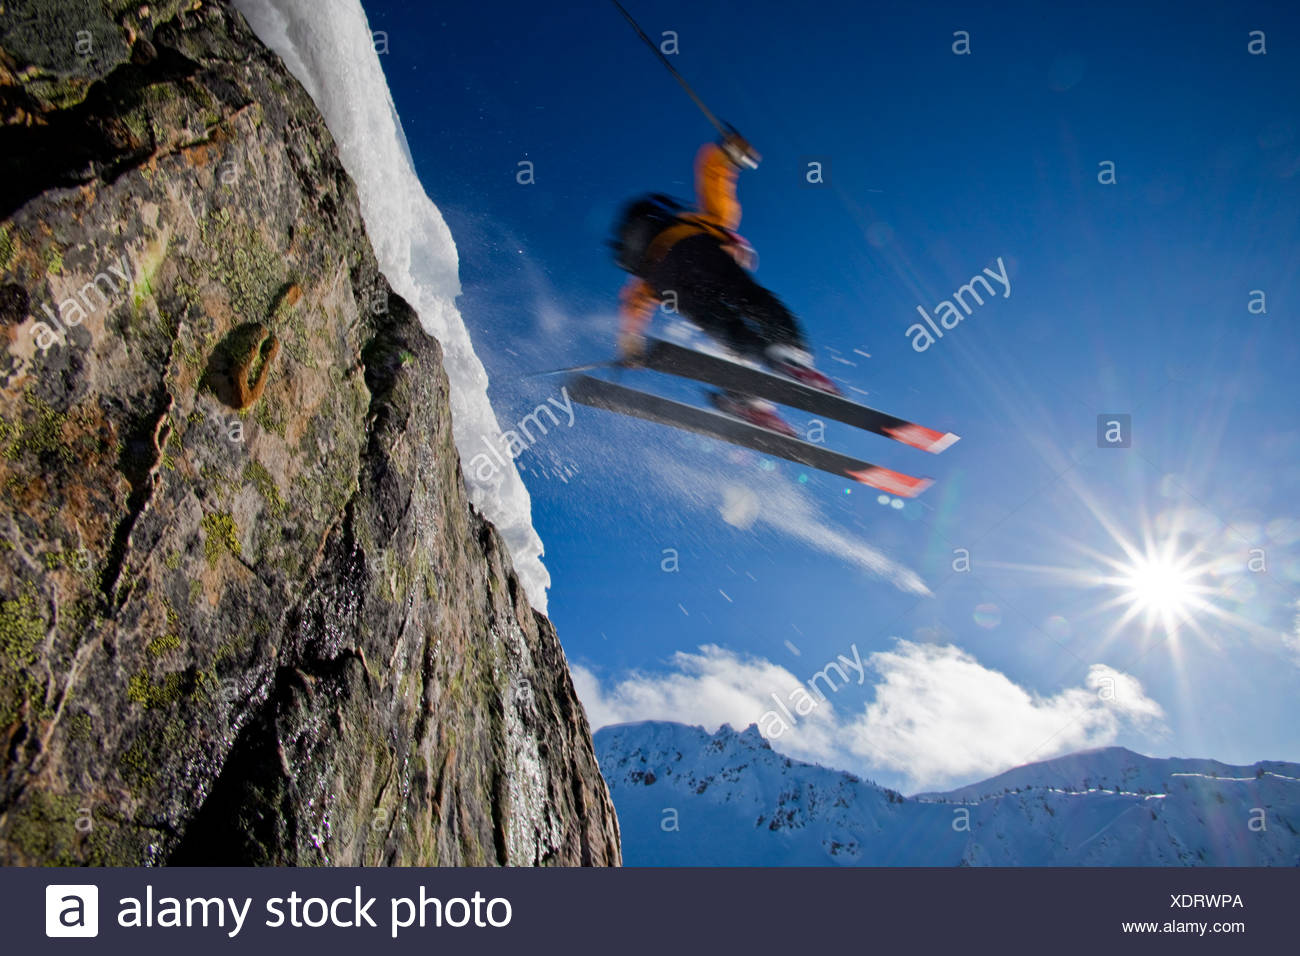 a man backcountry skiing airs off a cliff into the sun, Kicking Horse Backcountry, Golden, British Columbia, Canada - Stock Image